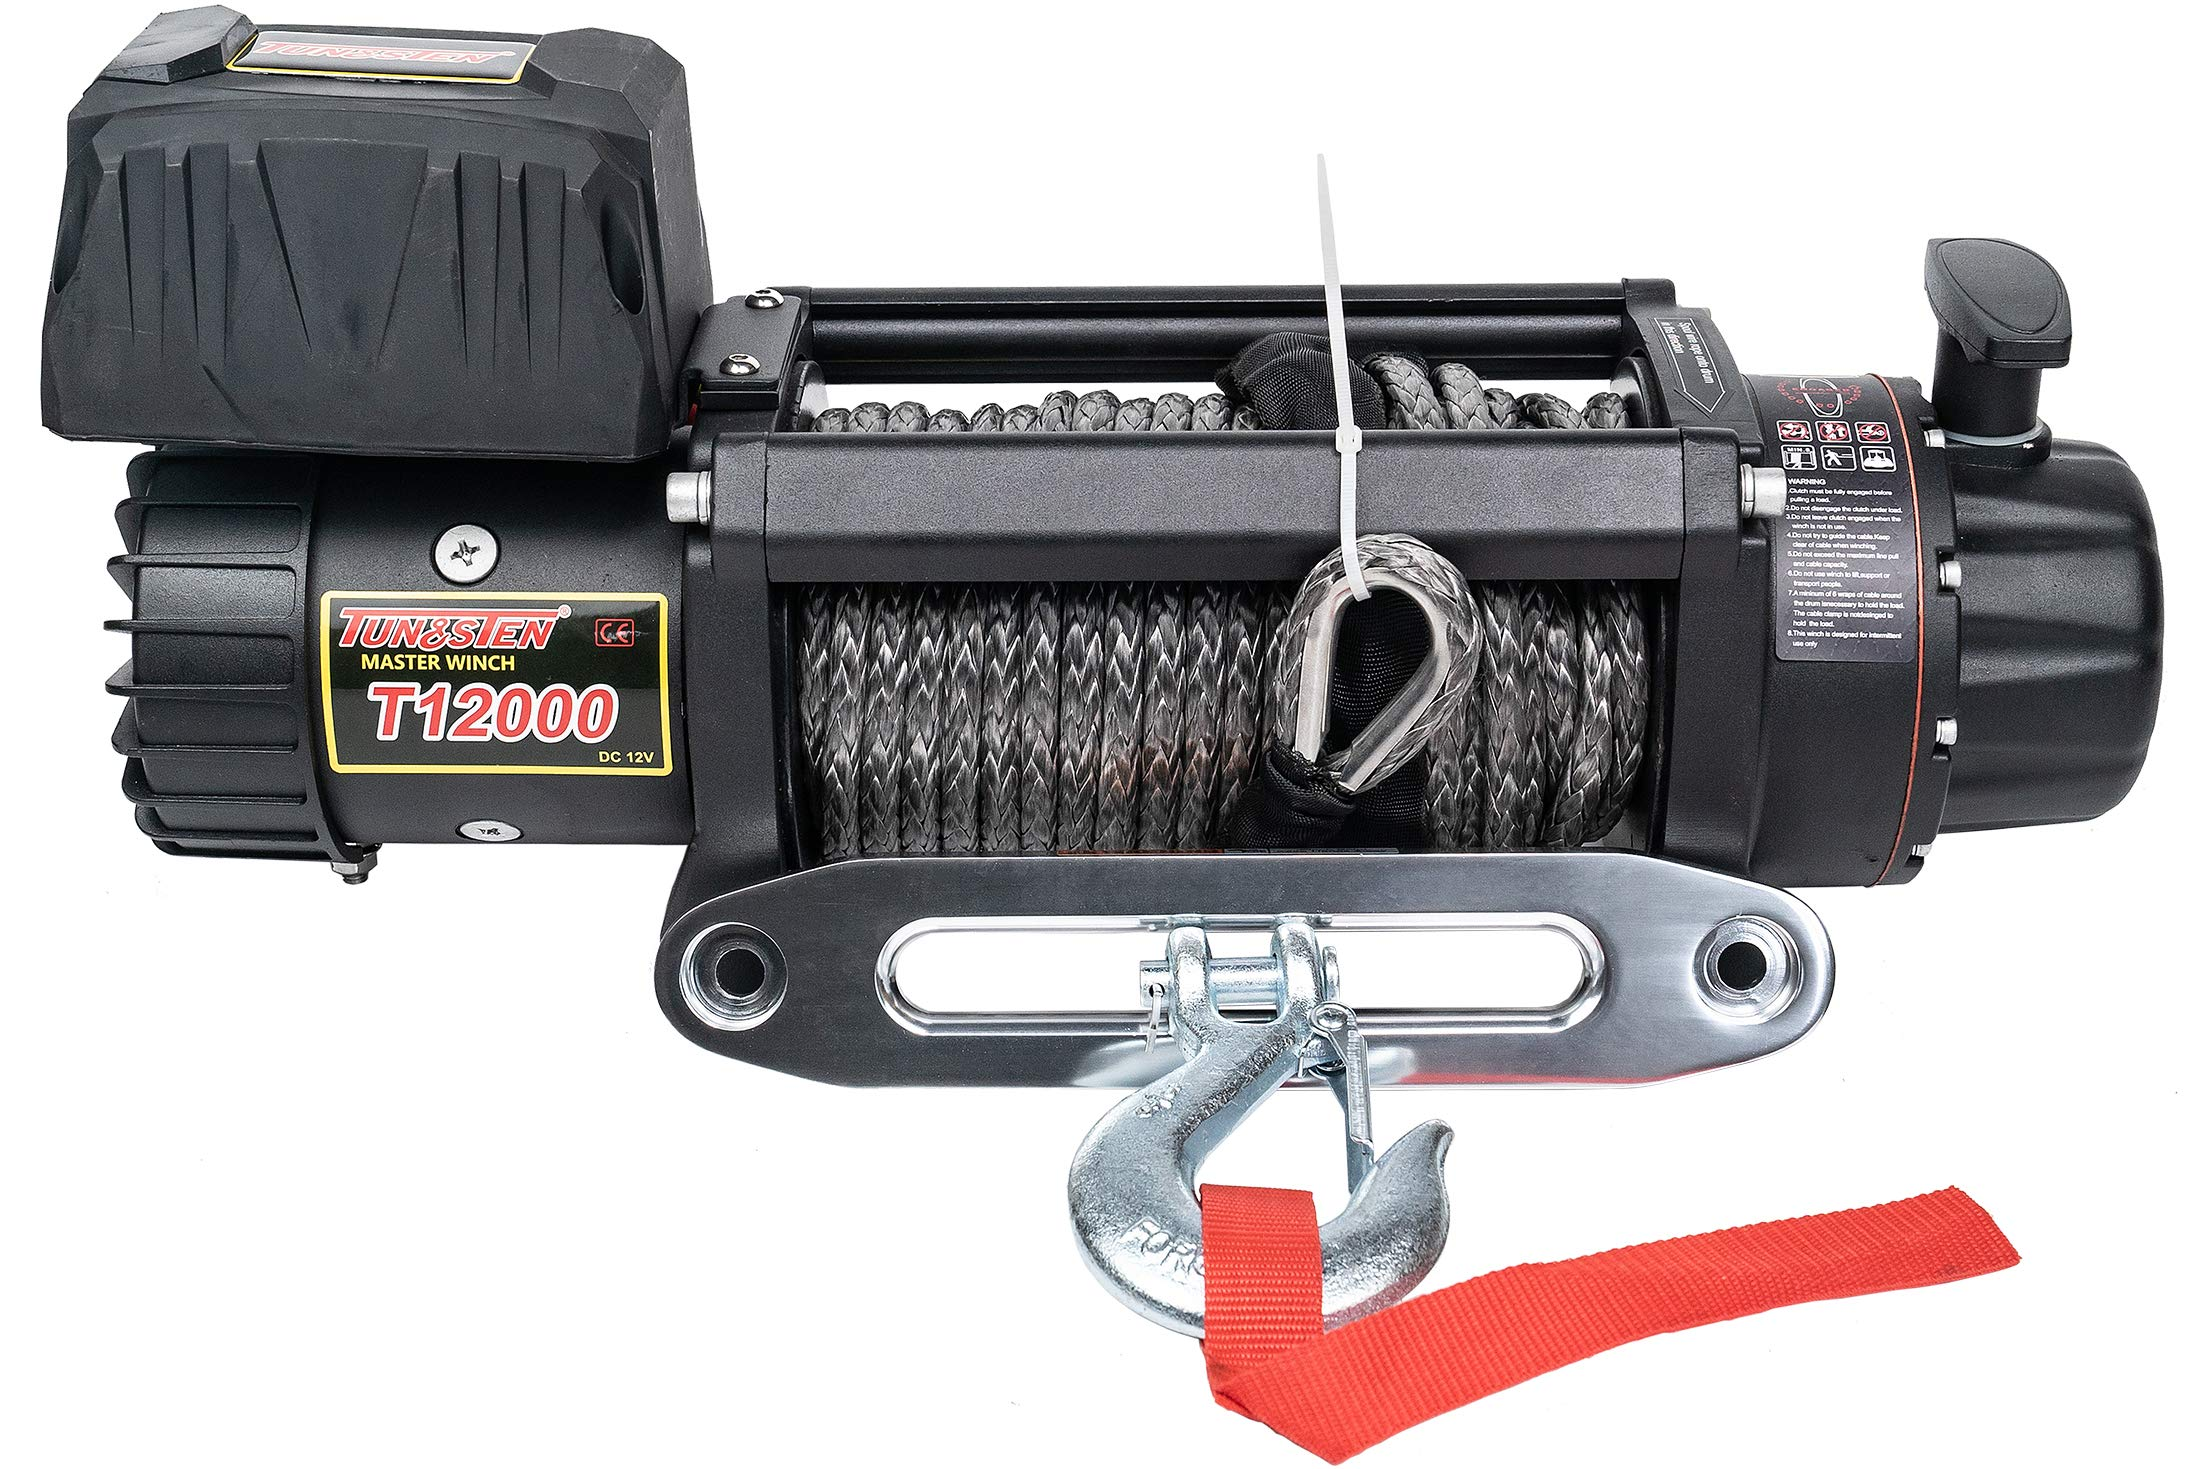 Tungsten4x4 T12000S Offroad 12000 lbs Load Capacity 12V Electric Winch with Synthetic Rope, Hawse Fairlead and Wireless Remote